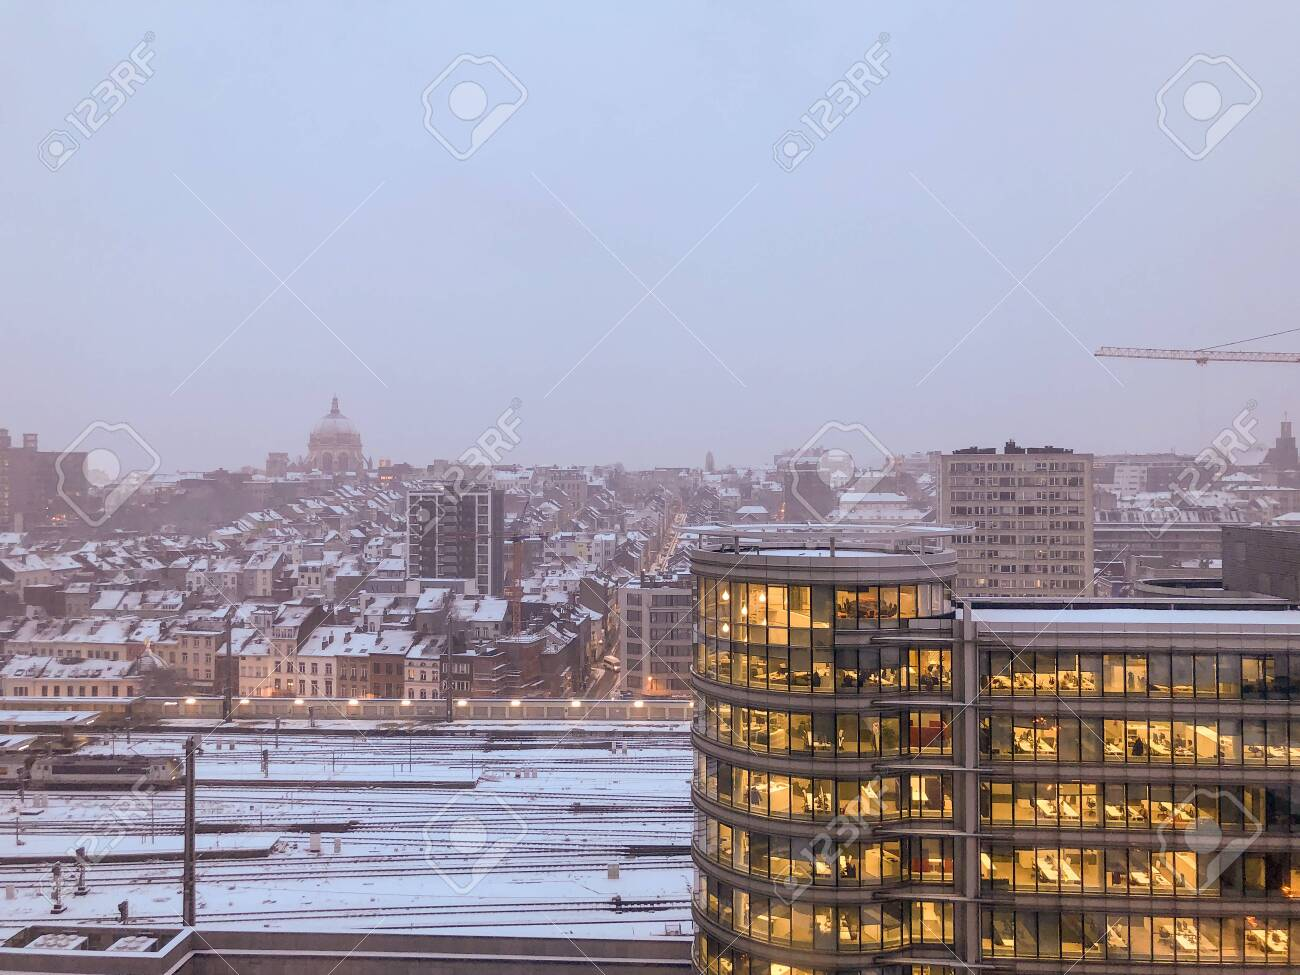 Brussels City scene on a snowy winters day. Shot on iPhone 8 Plus.